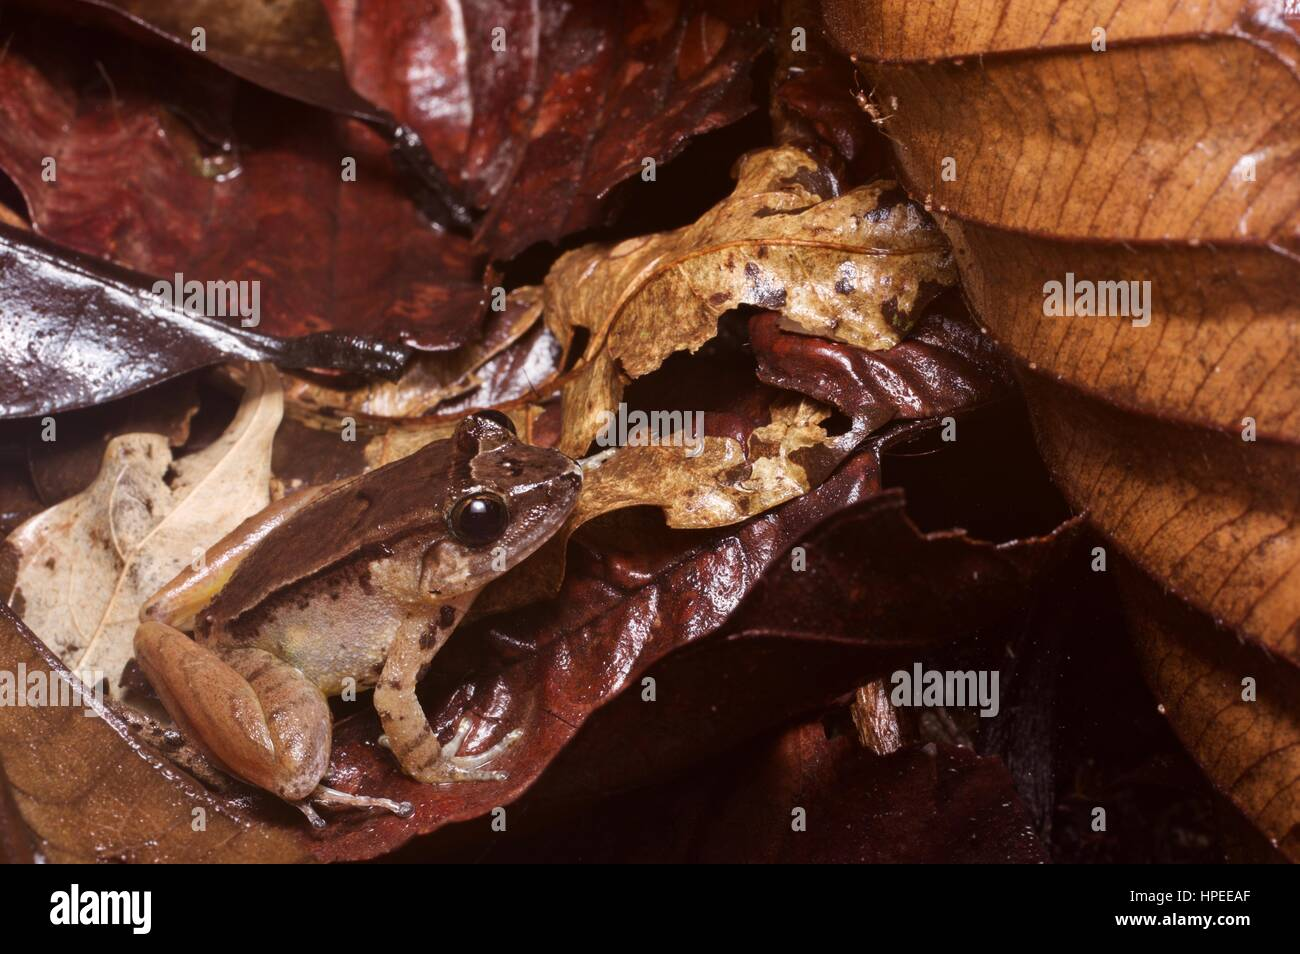 A Smooth Guardian Frog (Limnonectes palavanensis) in the rainforest leaf litter at Kubah National Park, Sarawak, - Stock Image